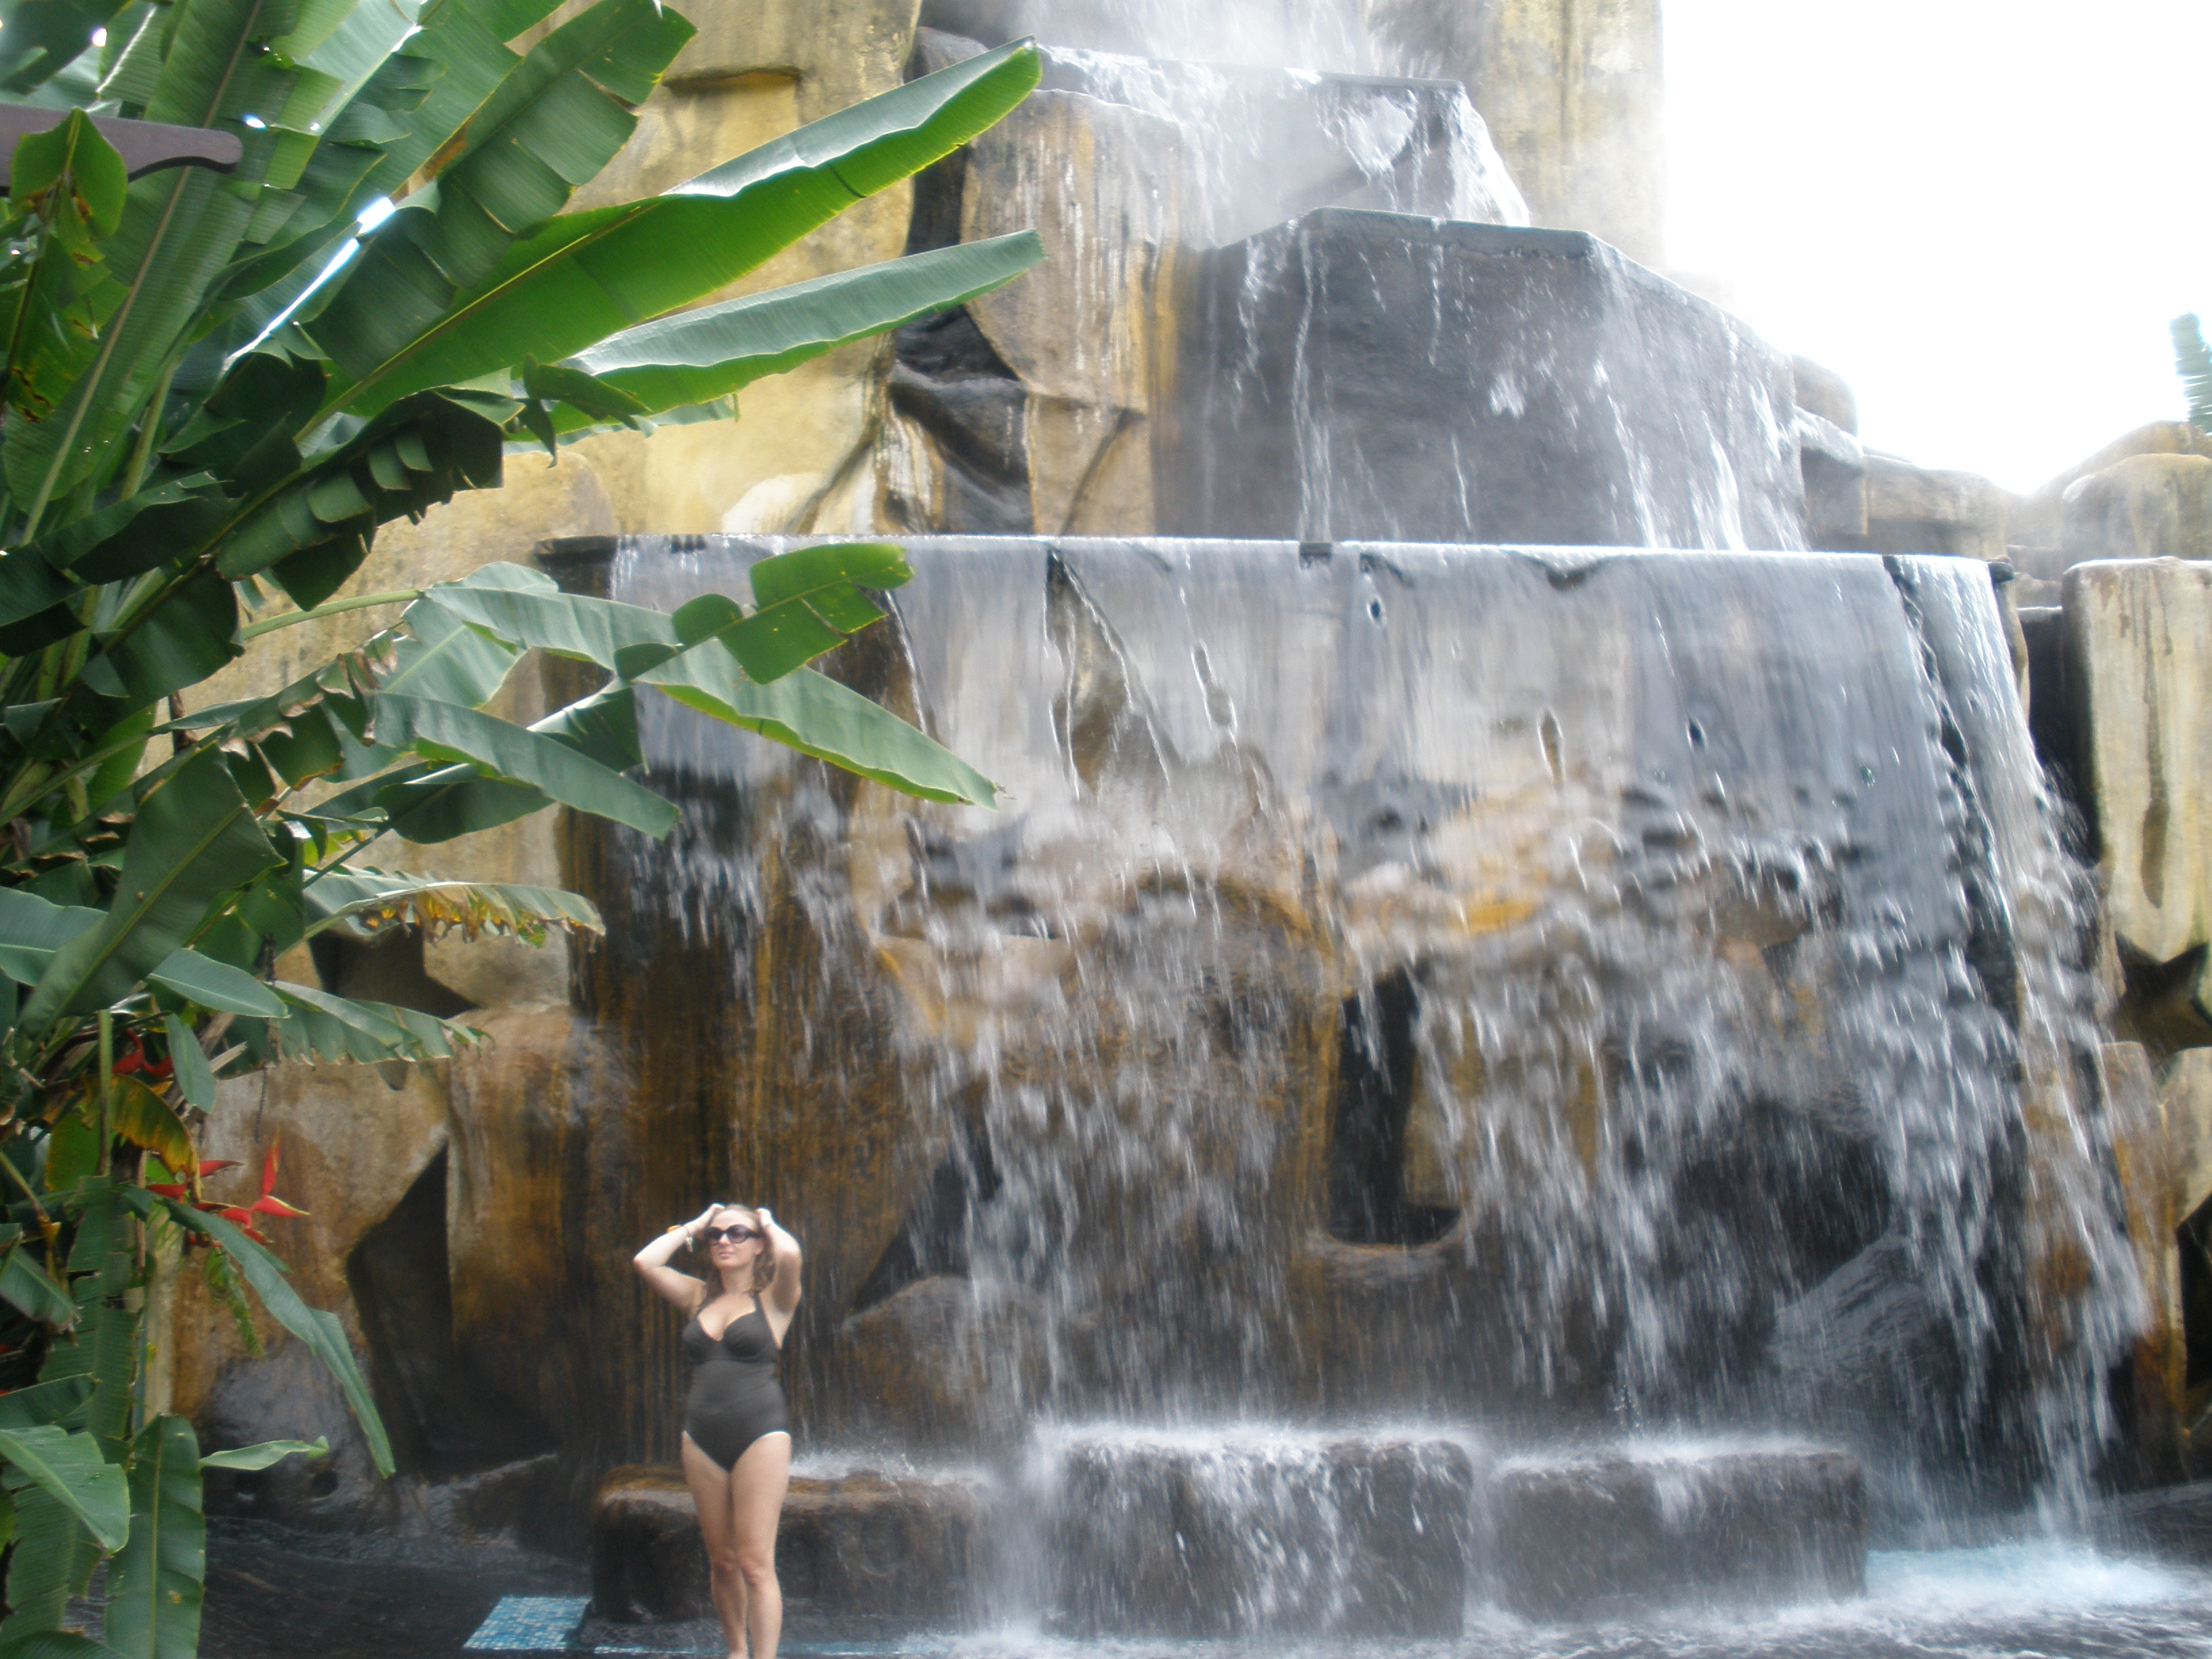 Under a waterfall at the springs